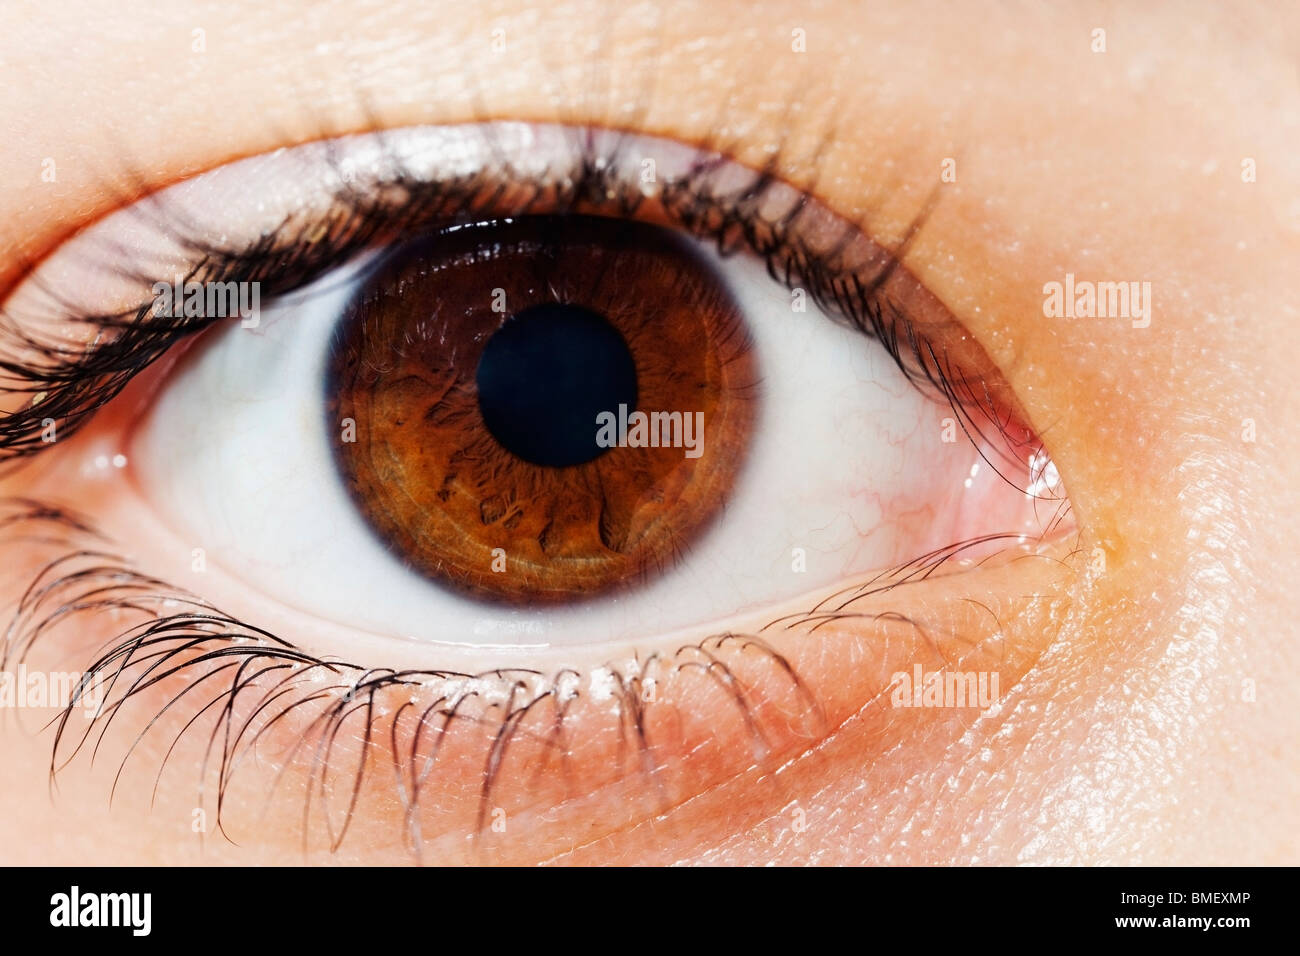 Close Up Of A Brown Eye - Stock Image